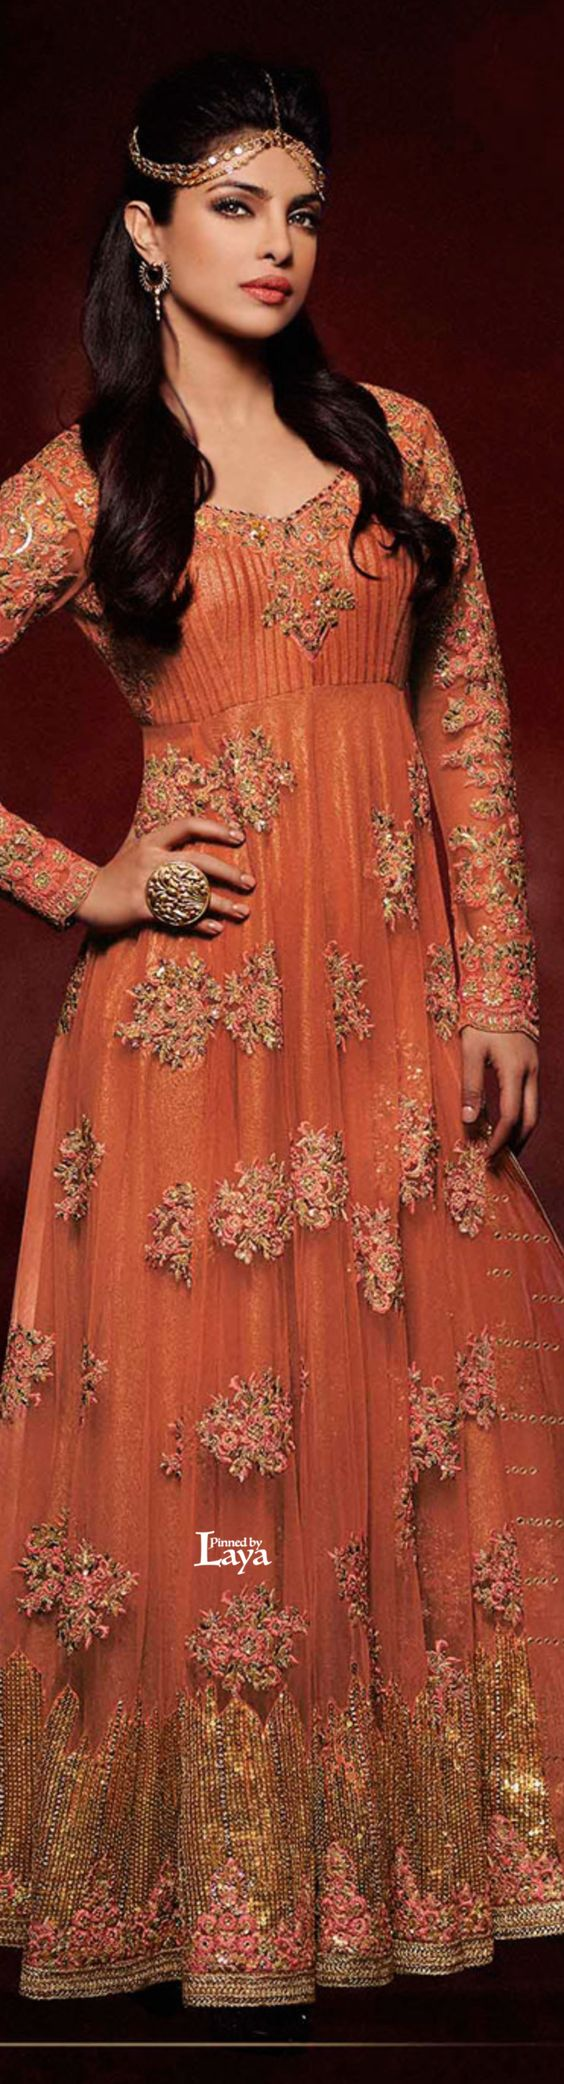 Latest Party Wear & Fancy Wedding Frock Designs Collection 2016-2017 (10)